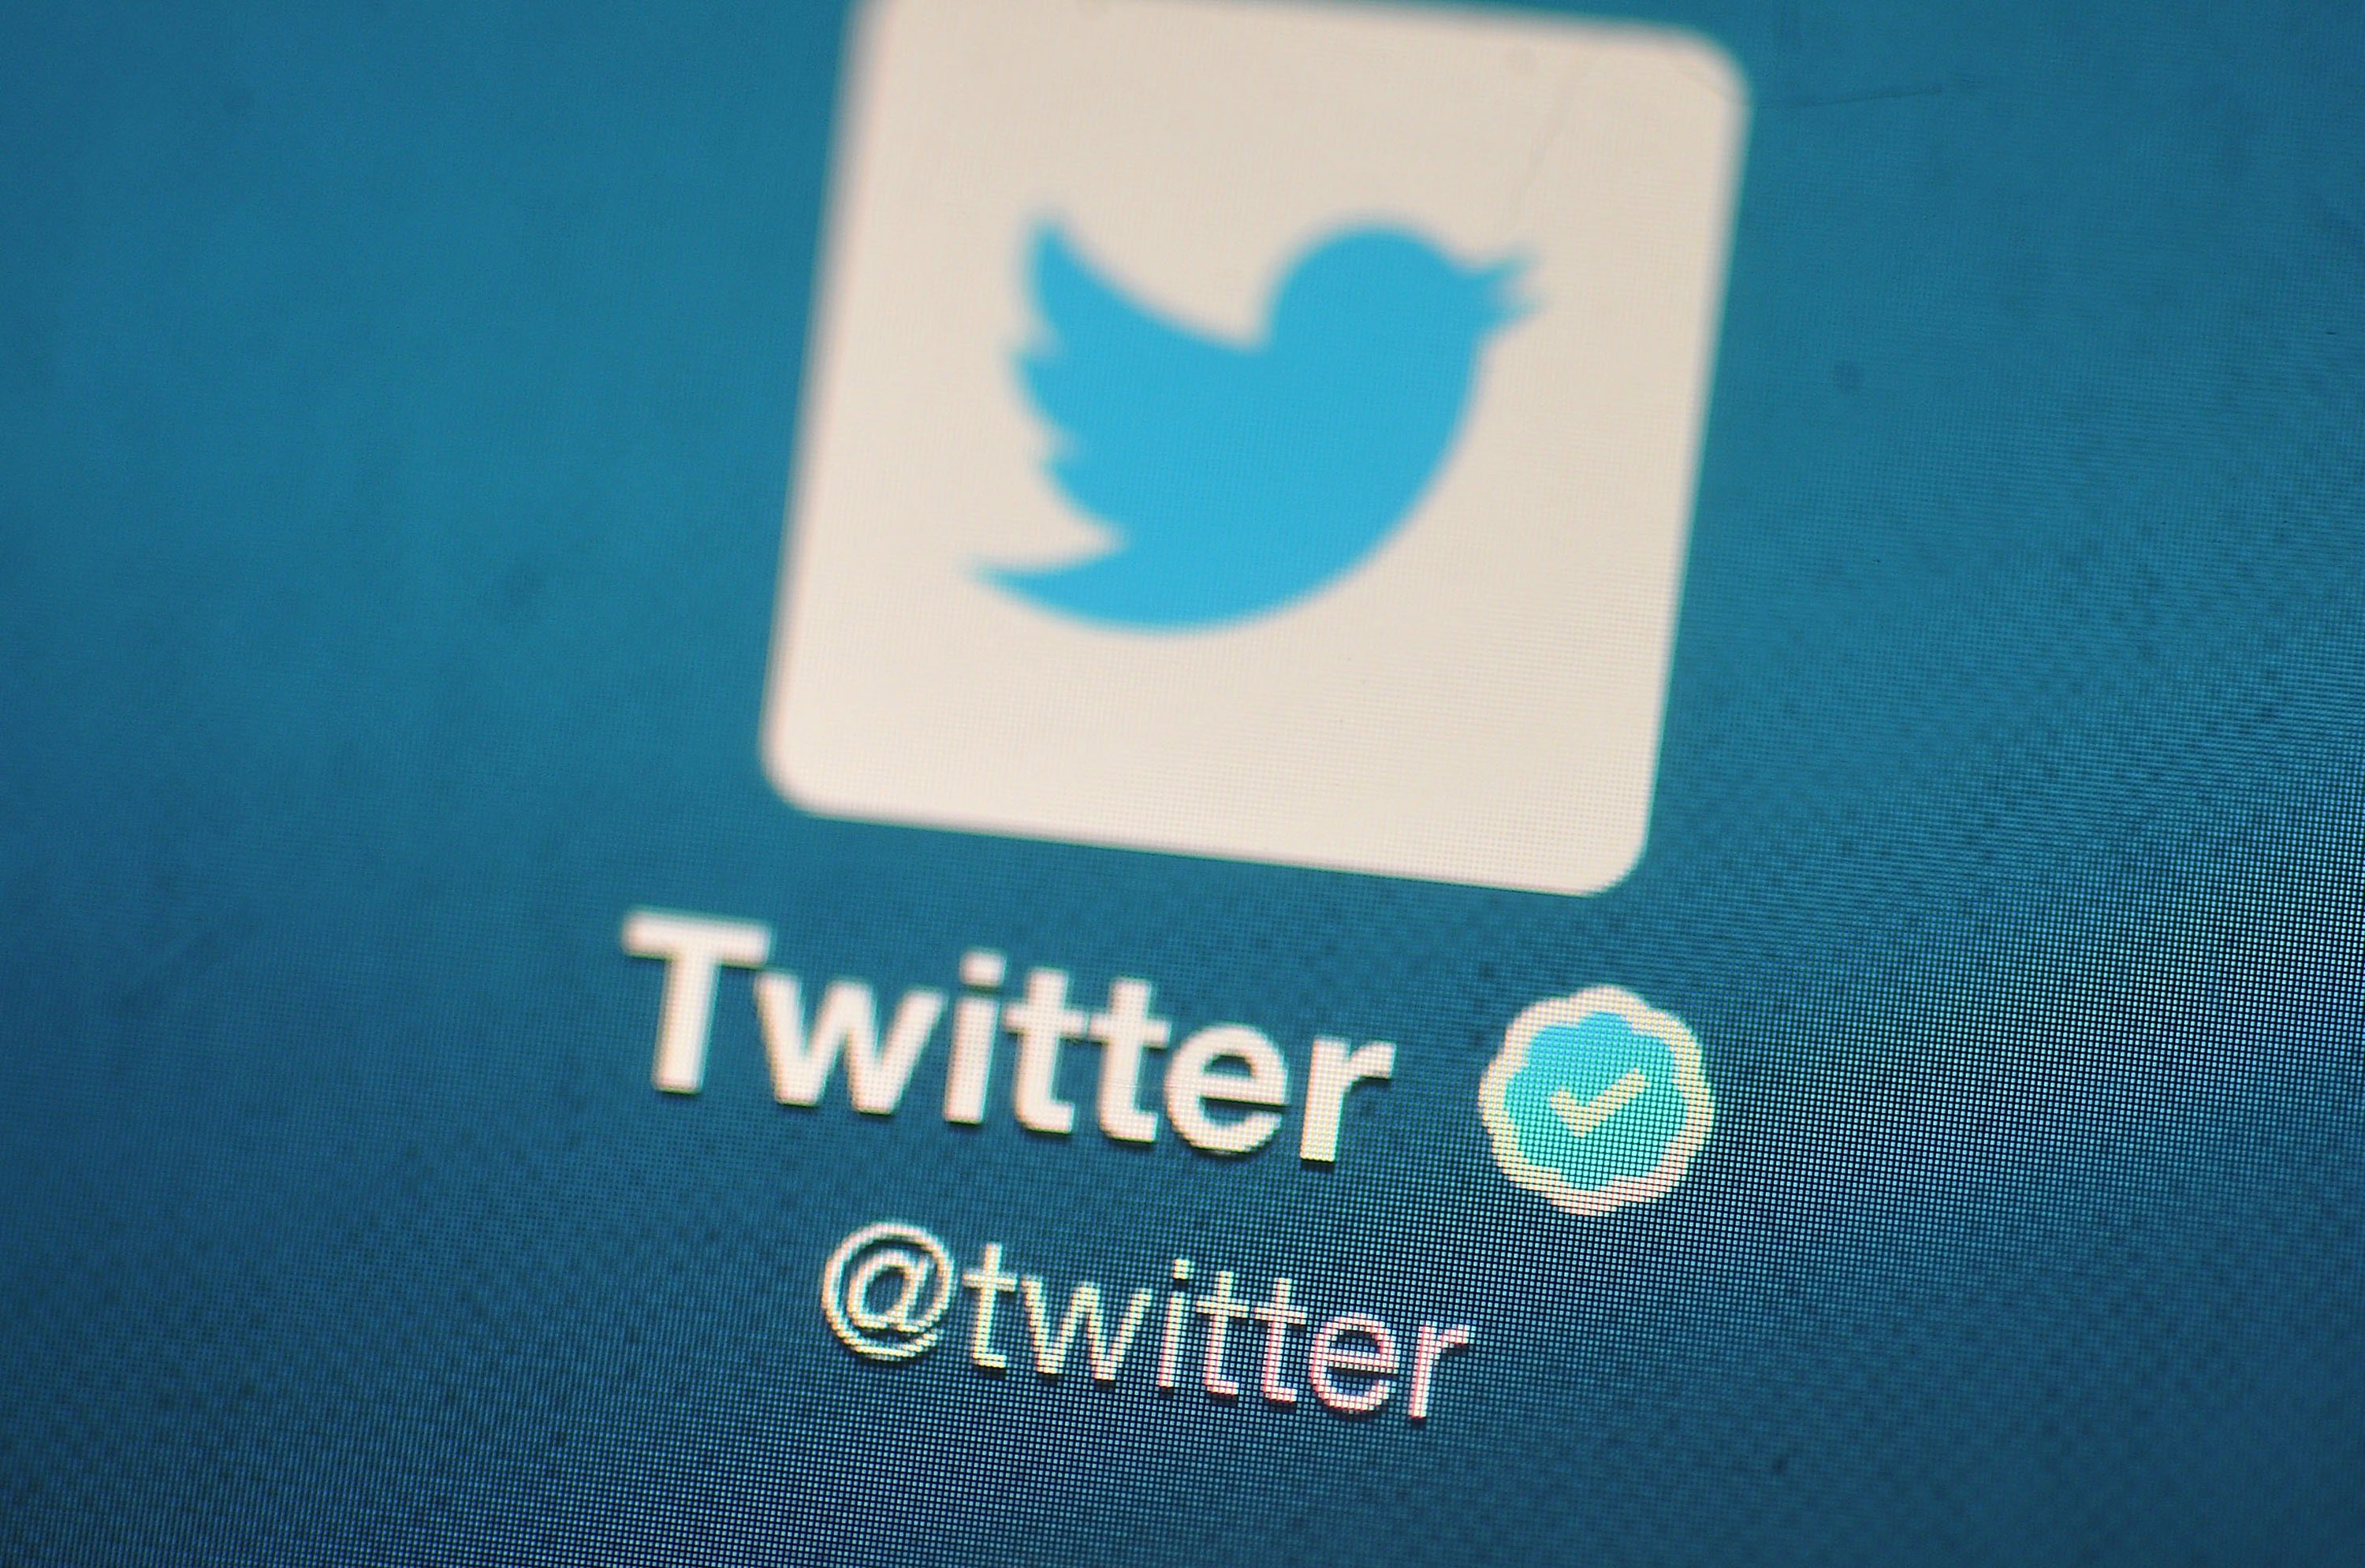 twitter logo, blue bird in a white box on a blue background